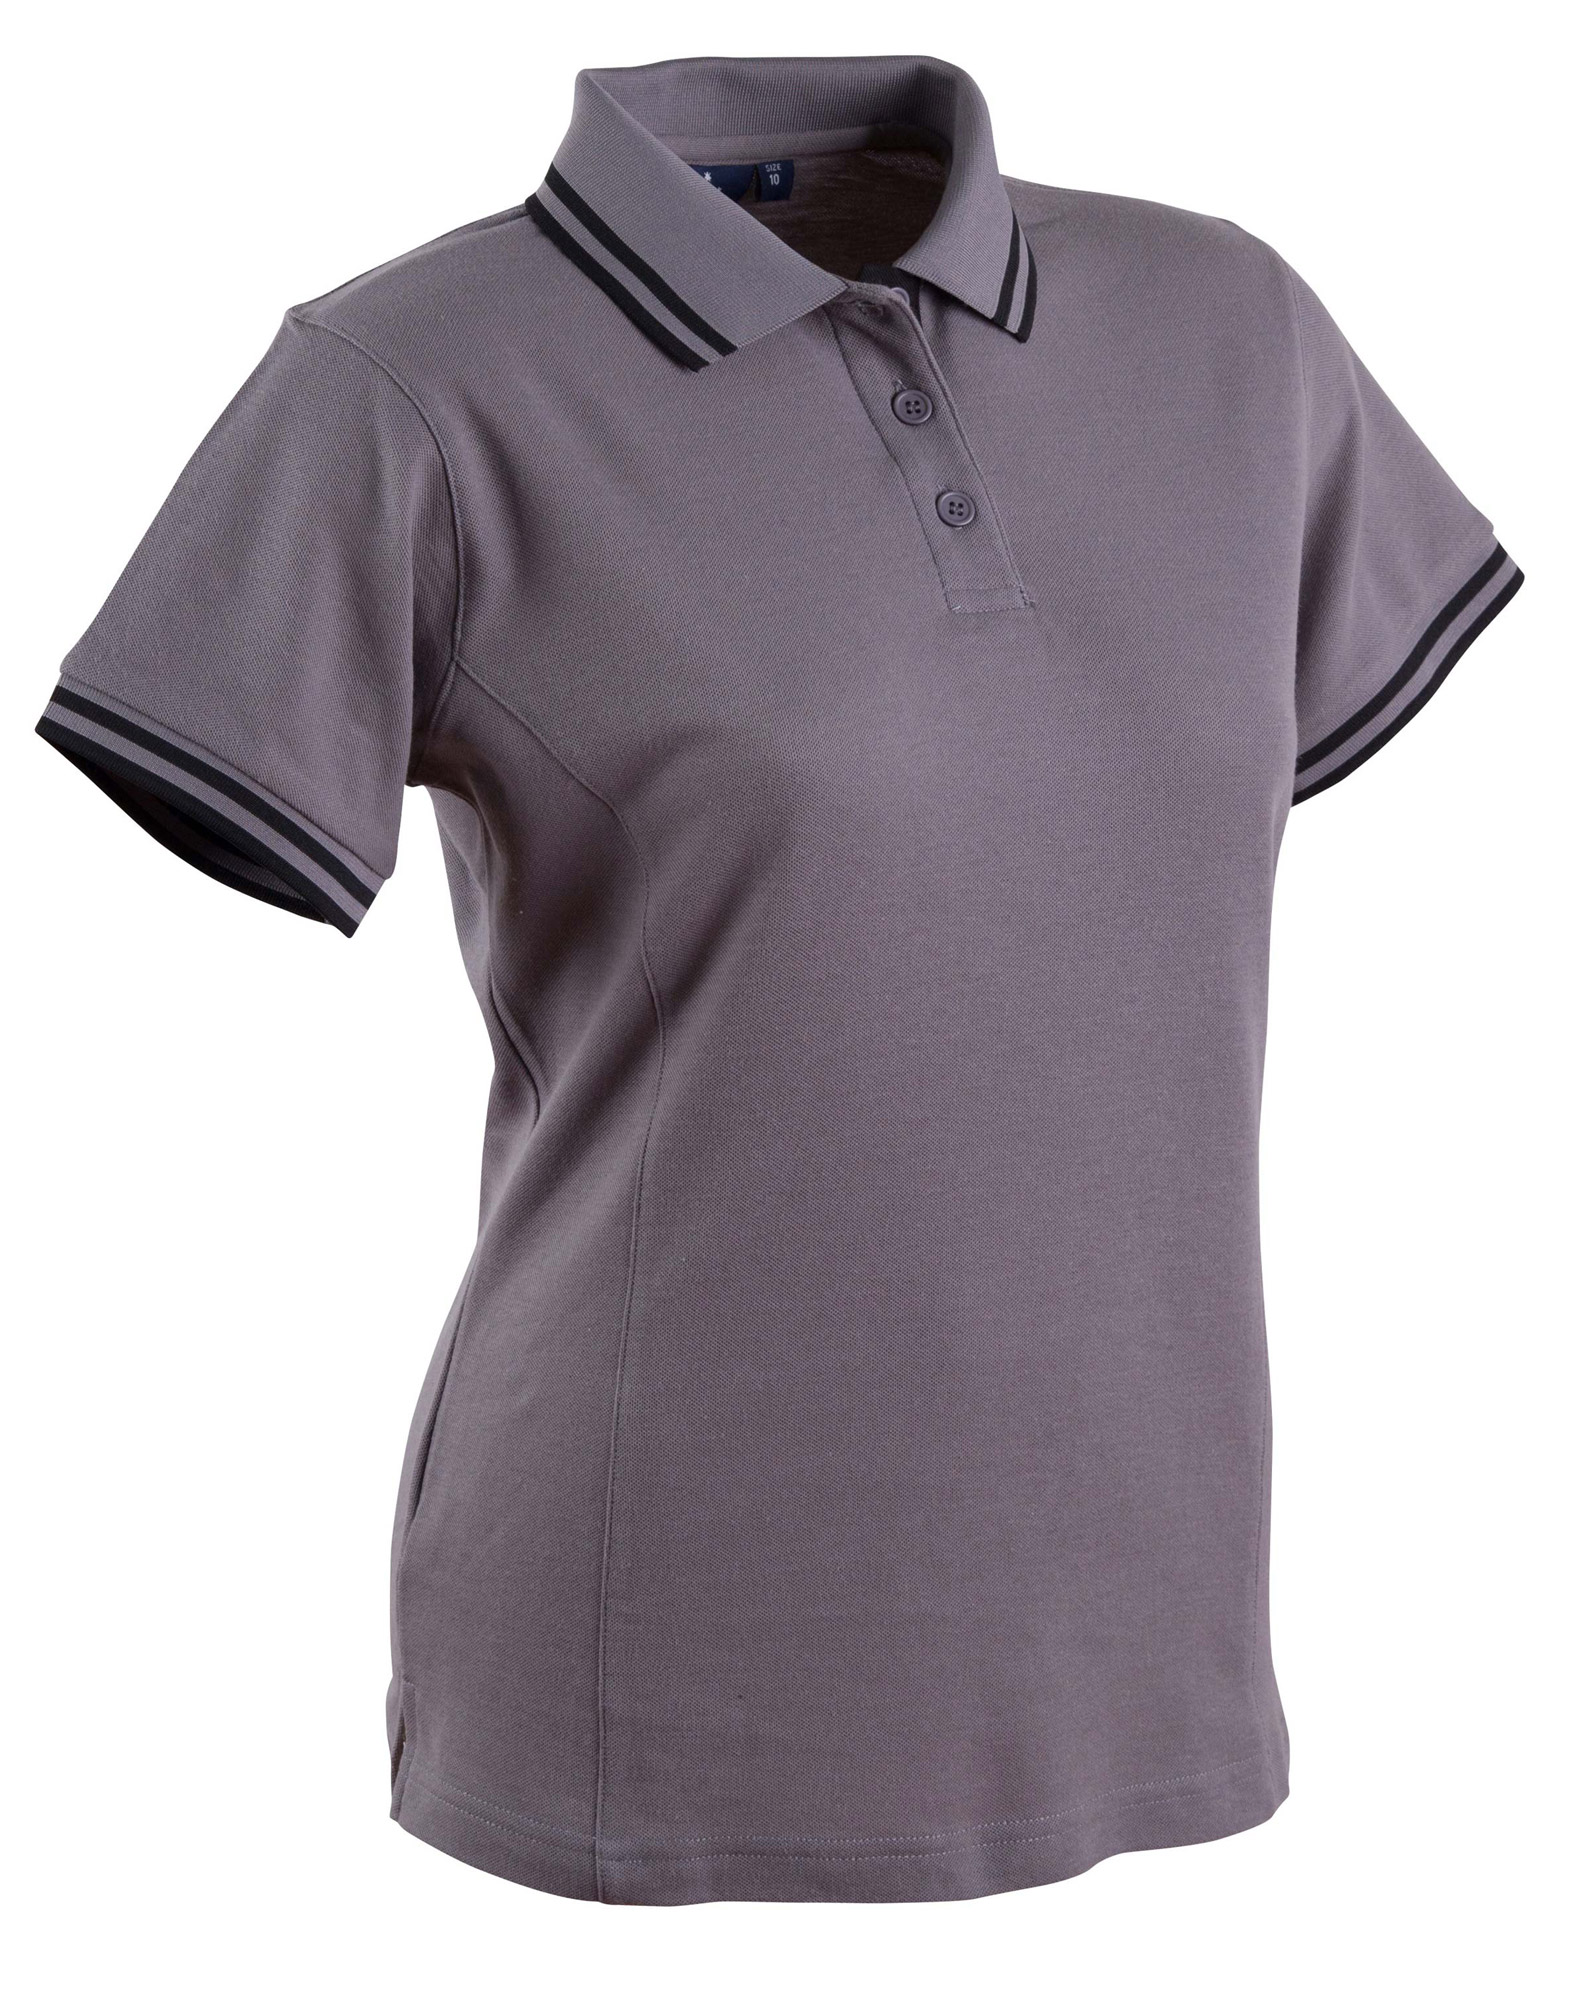 http://ws-imgs.s3.amazonaws.com/POLOSHIRTS/PS66_Grey.Black_SideFront_l.jpg